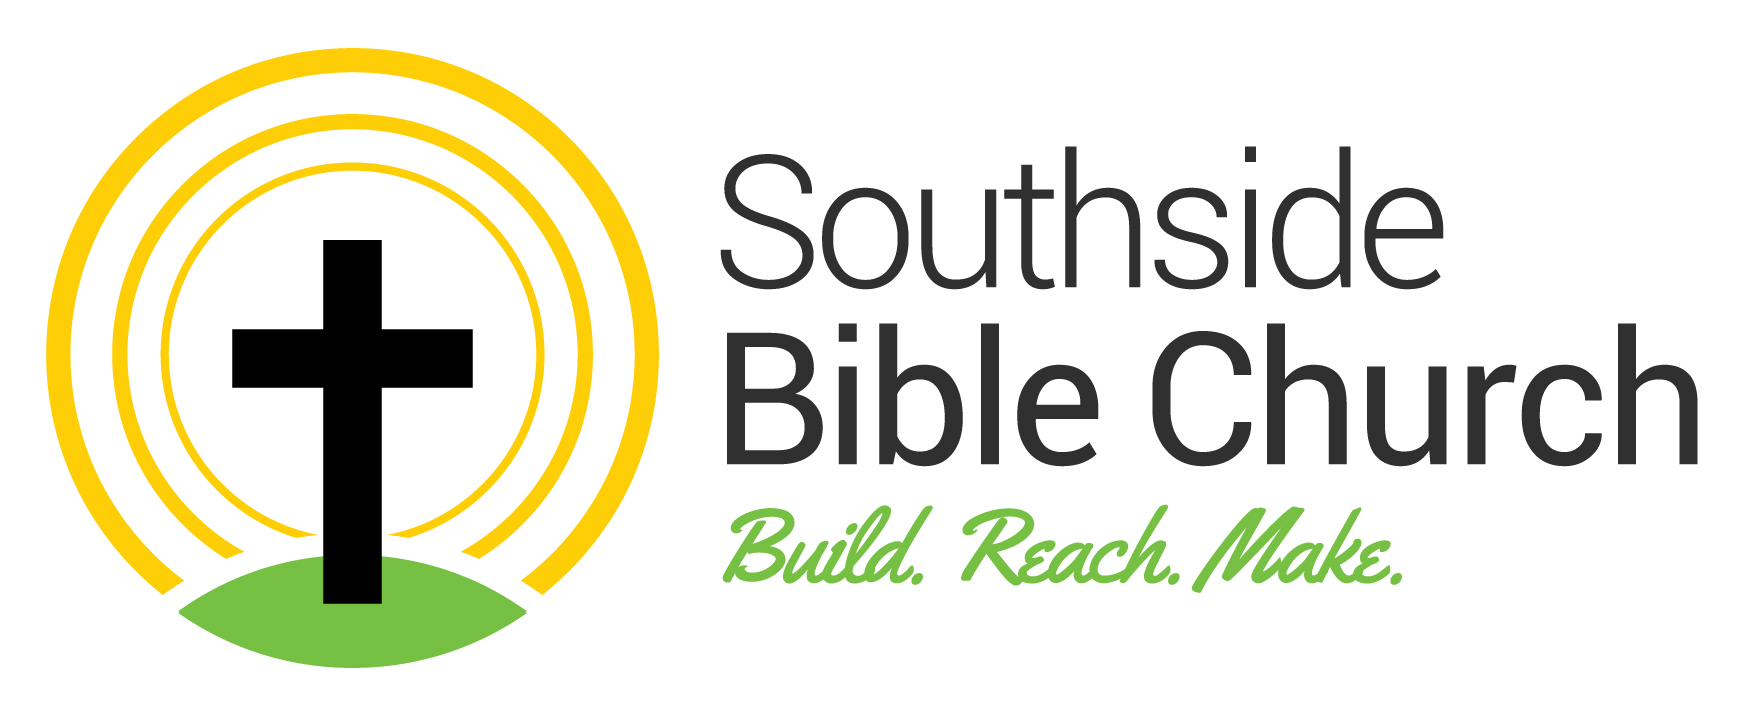 Southside Bible Church